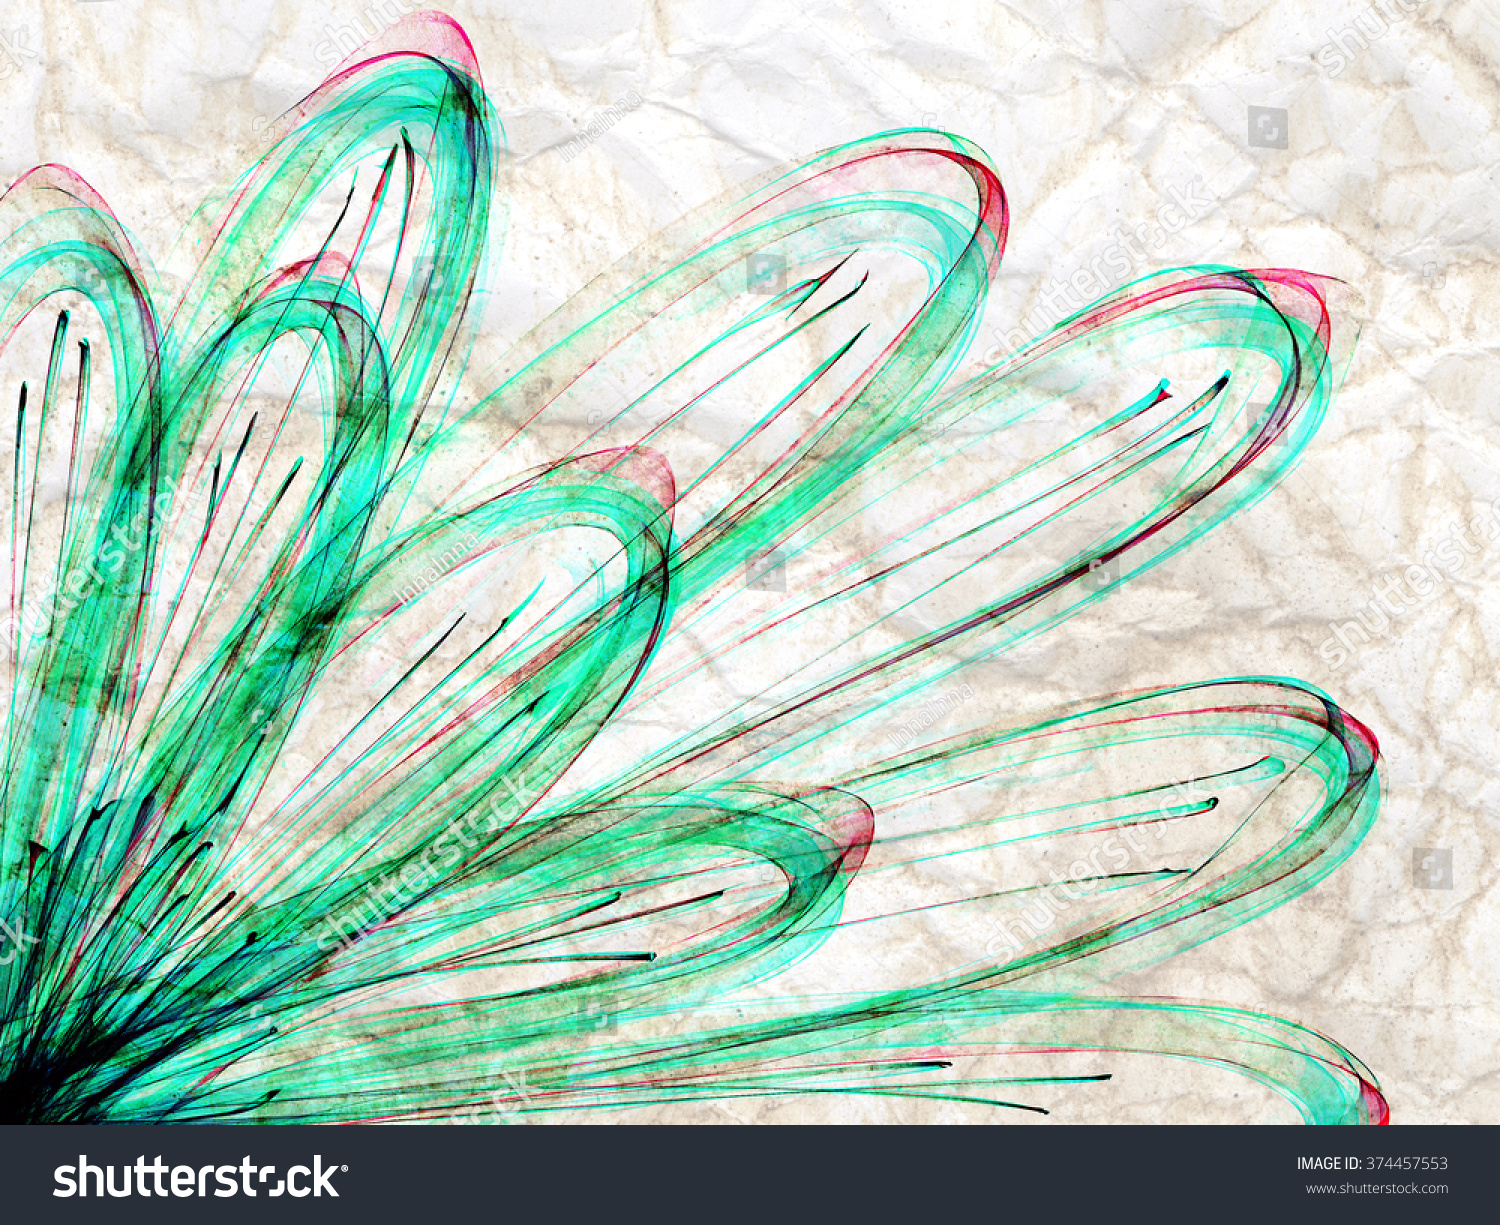 Abstract Line Drawing Flowers : Green flower abstract line draw floral stock illustration